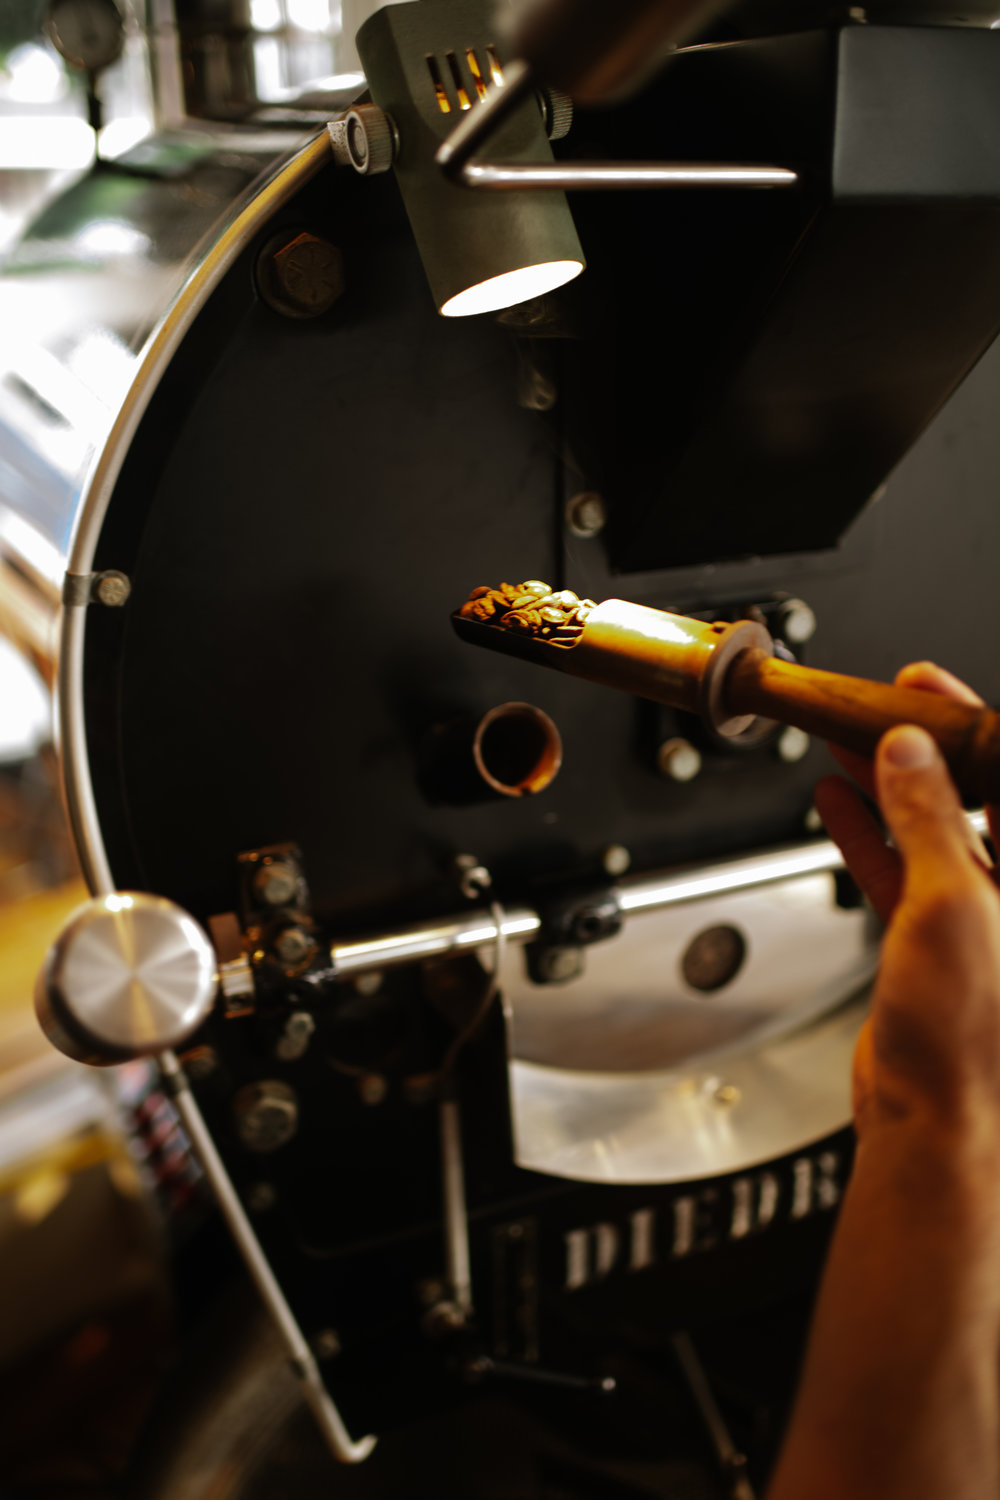 Coffee beans being inspected in the small-batch roasting process. PHOTO: Blake Wisz